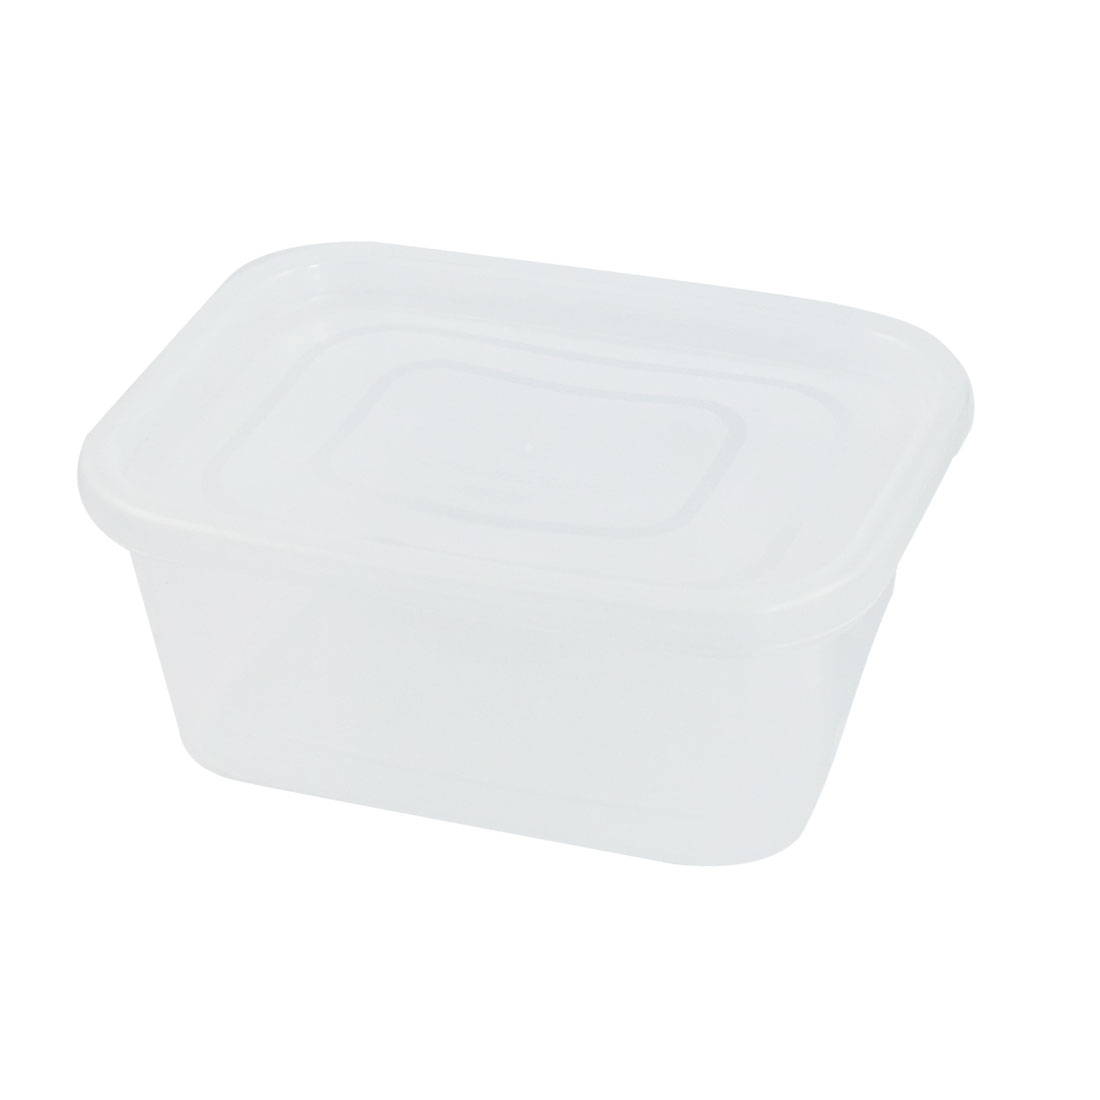 Rectangle Shaped Clear Plastic Lunch Boxes Case 740mL